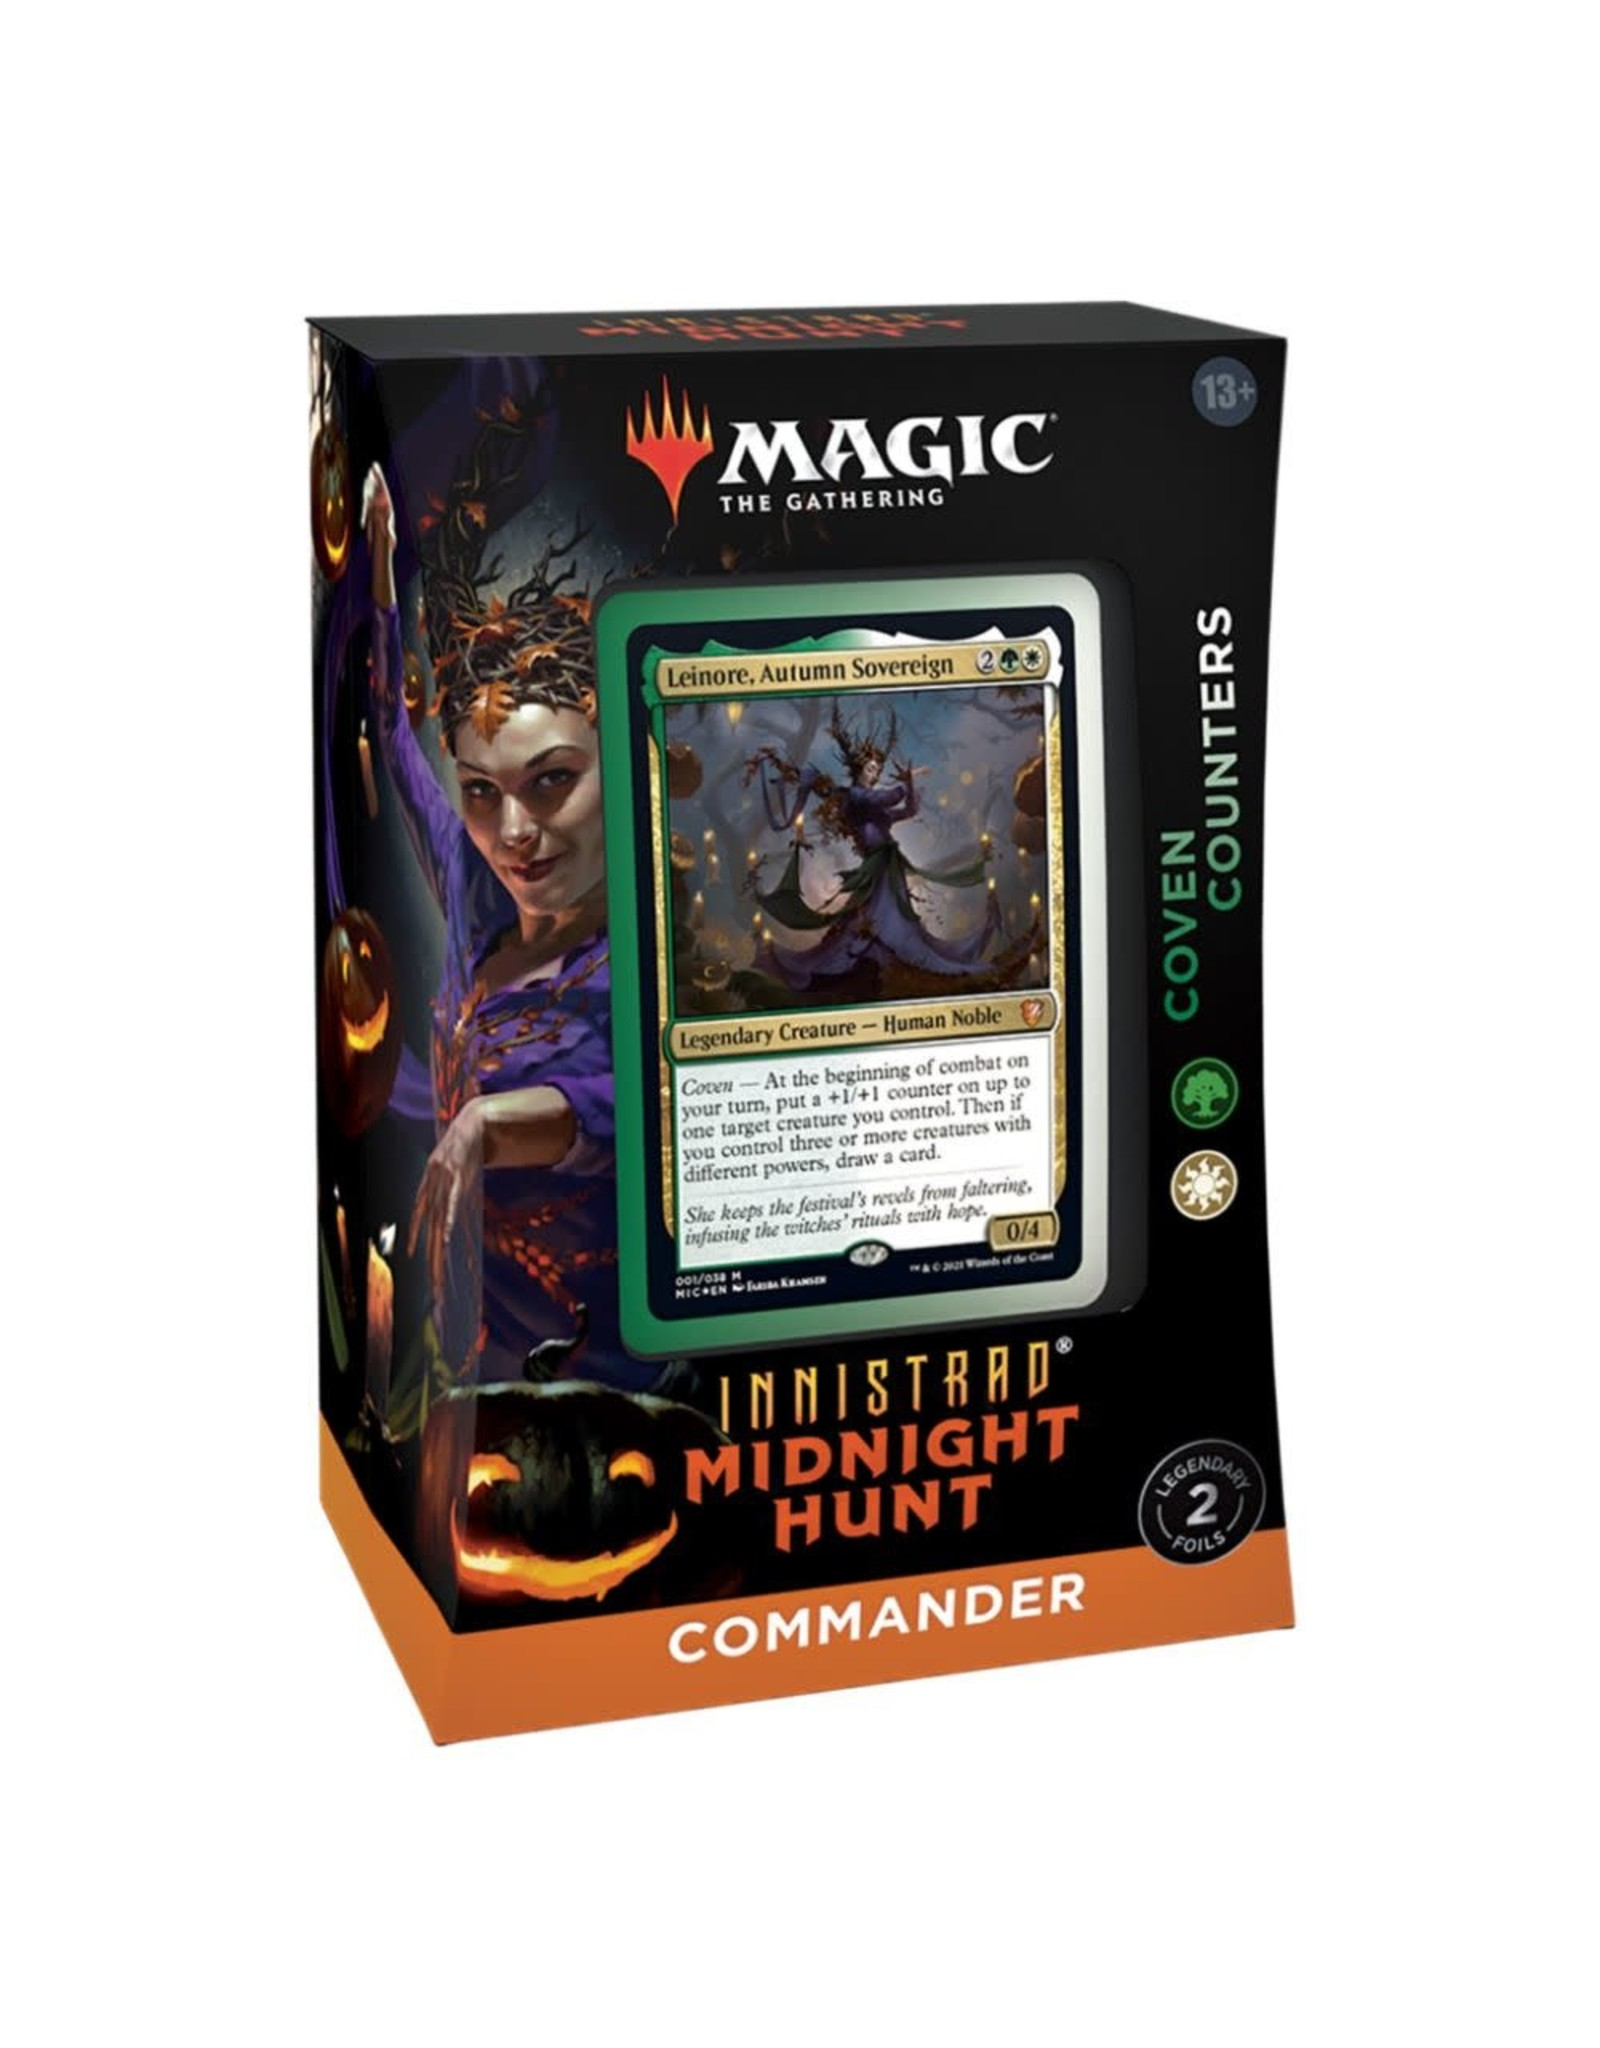 Wizards of the Coast Magic: The Gathering Innistrad: Midnight Hunt Commander Deck - Coven counters